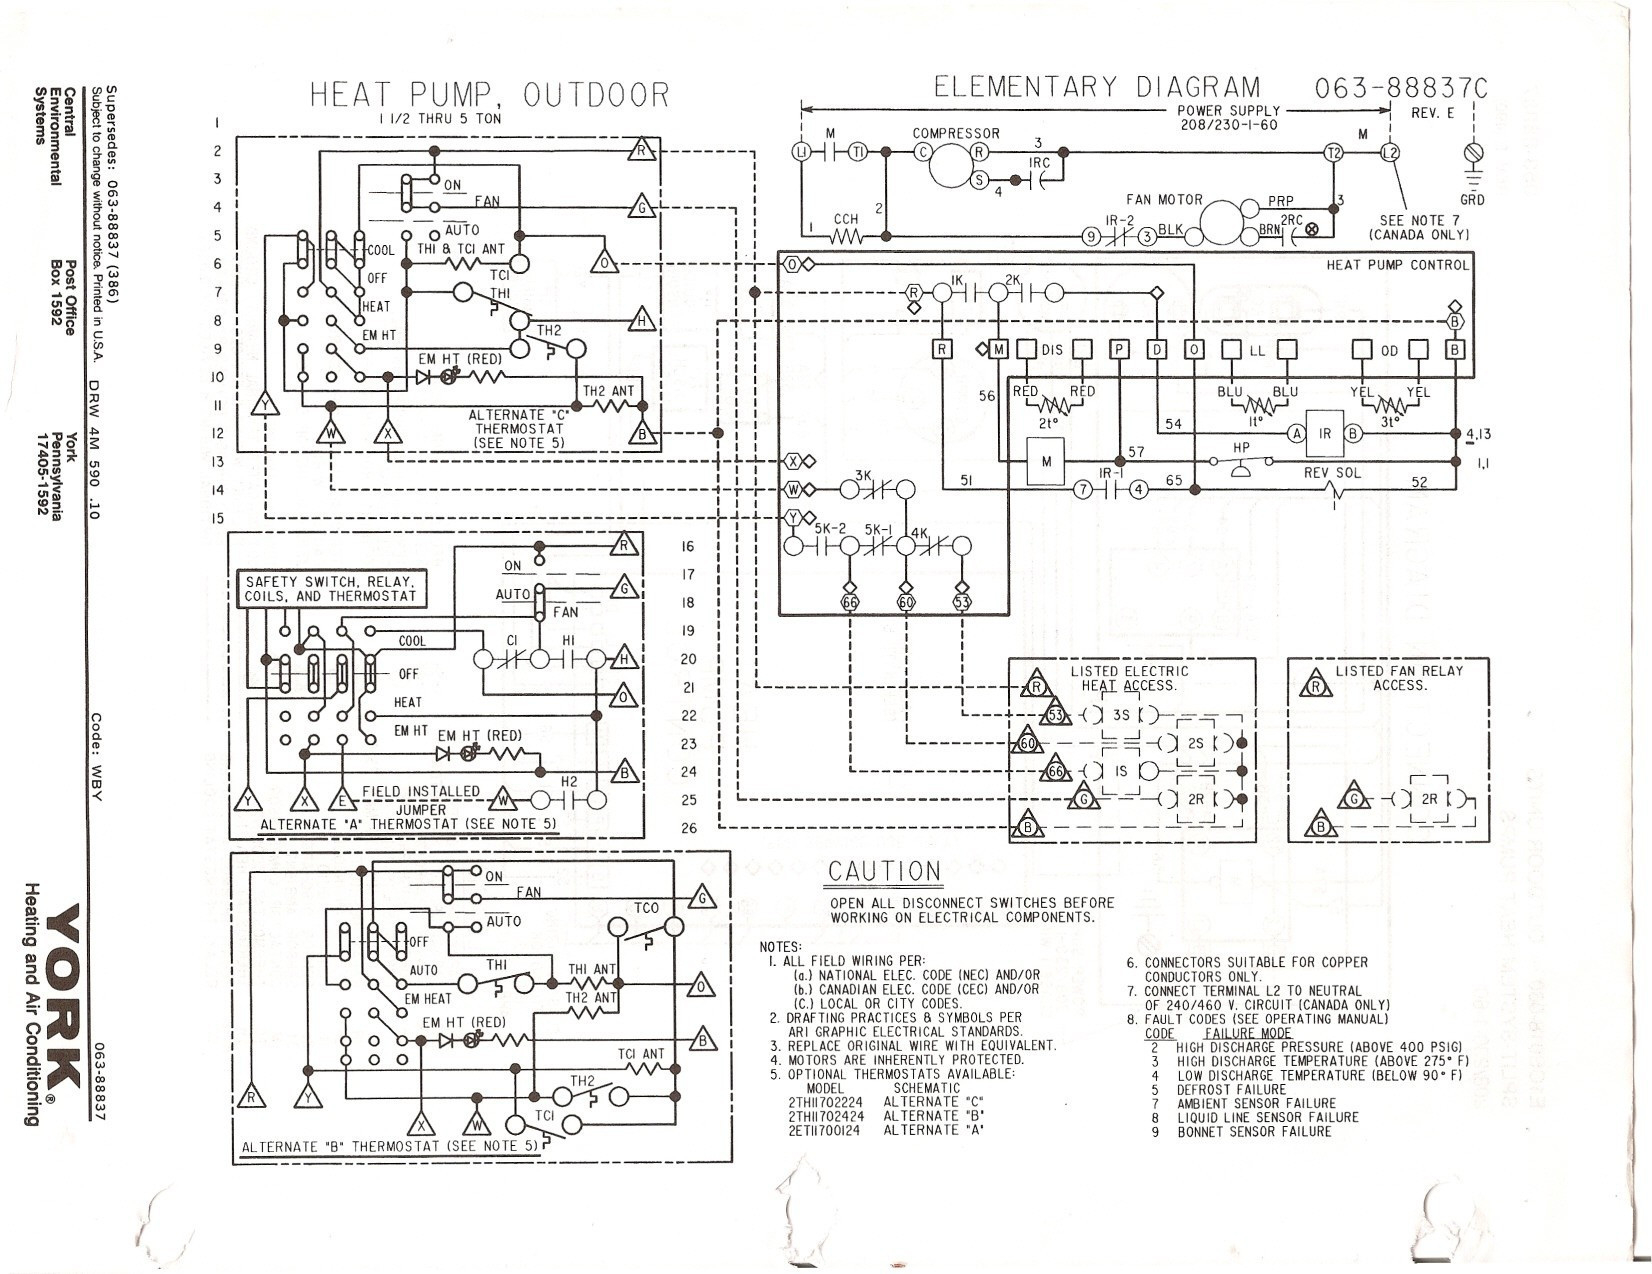 hight resolution of coleman electric heat pump wiring diagram coleman eb15b furnacemedium resolution of coleman eb17b furnace wiring diagram